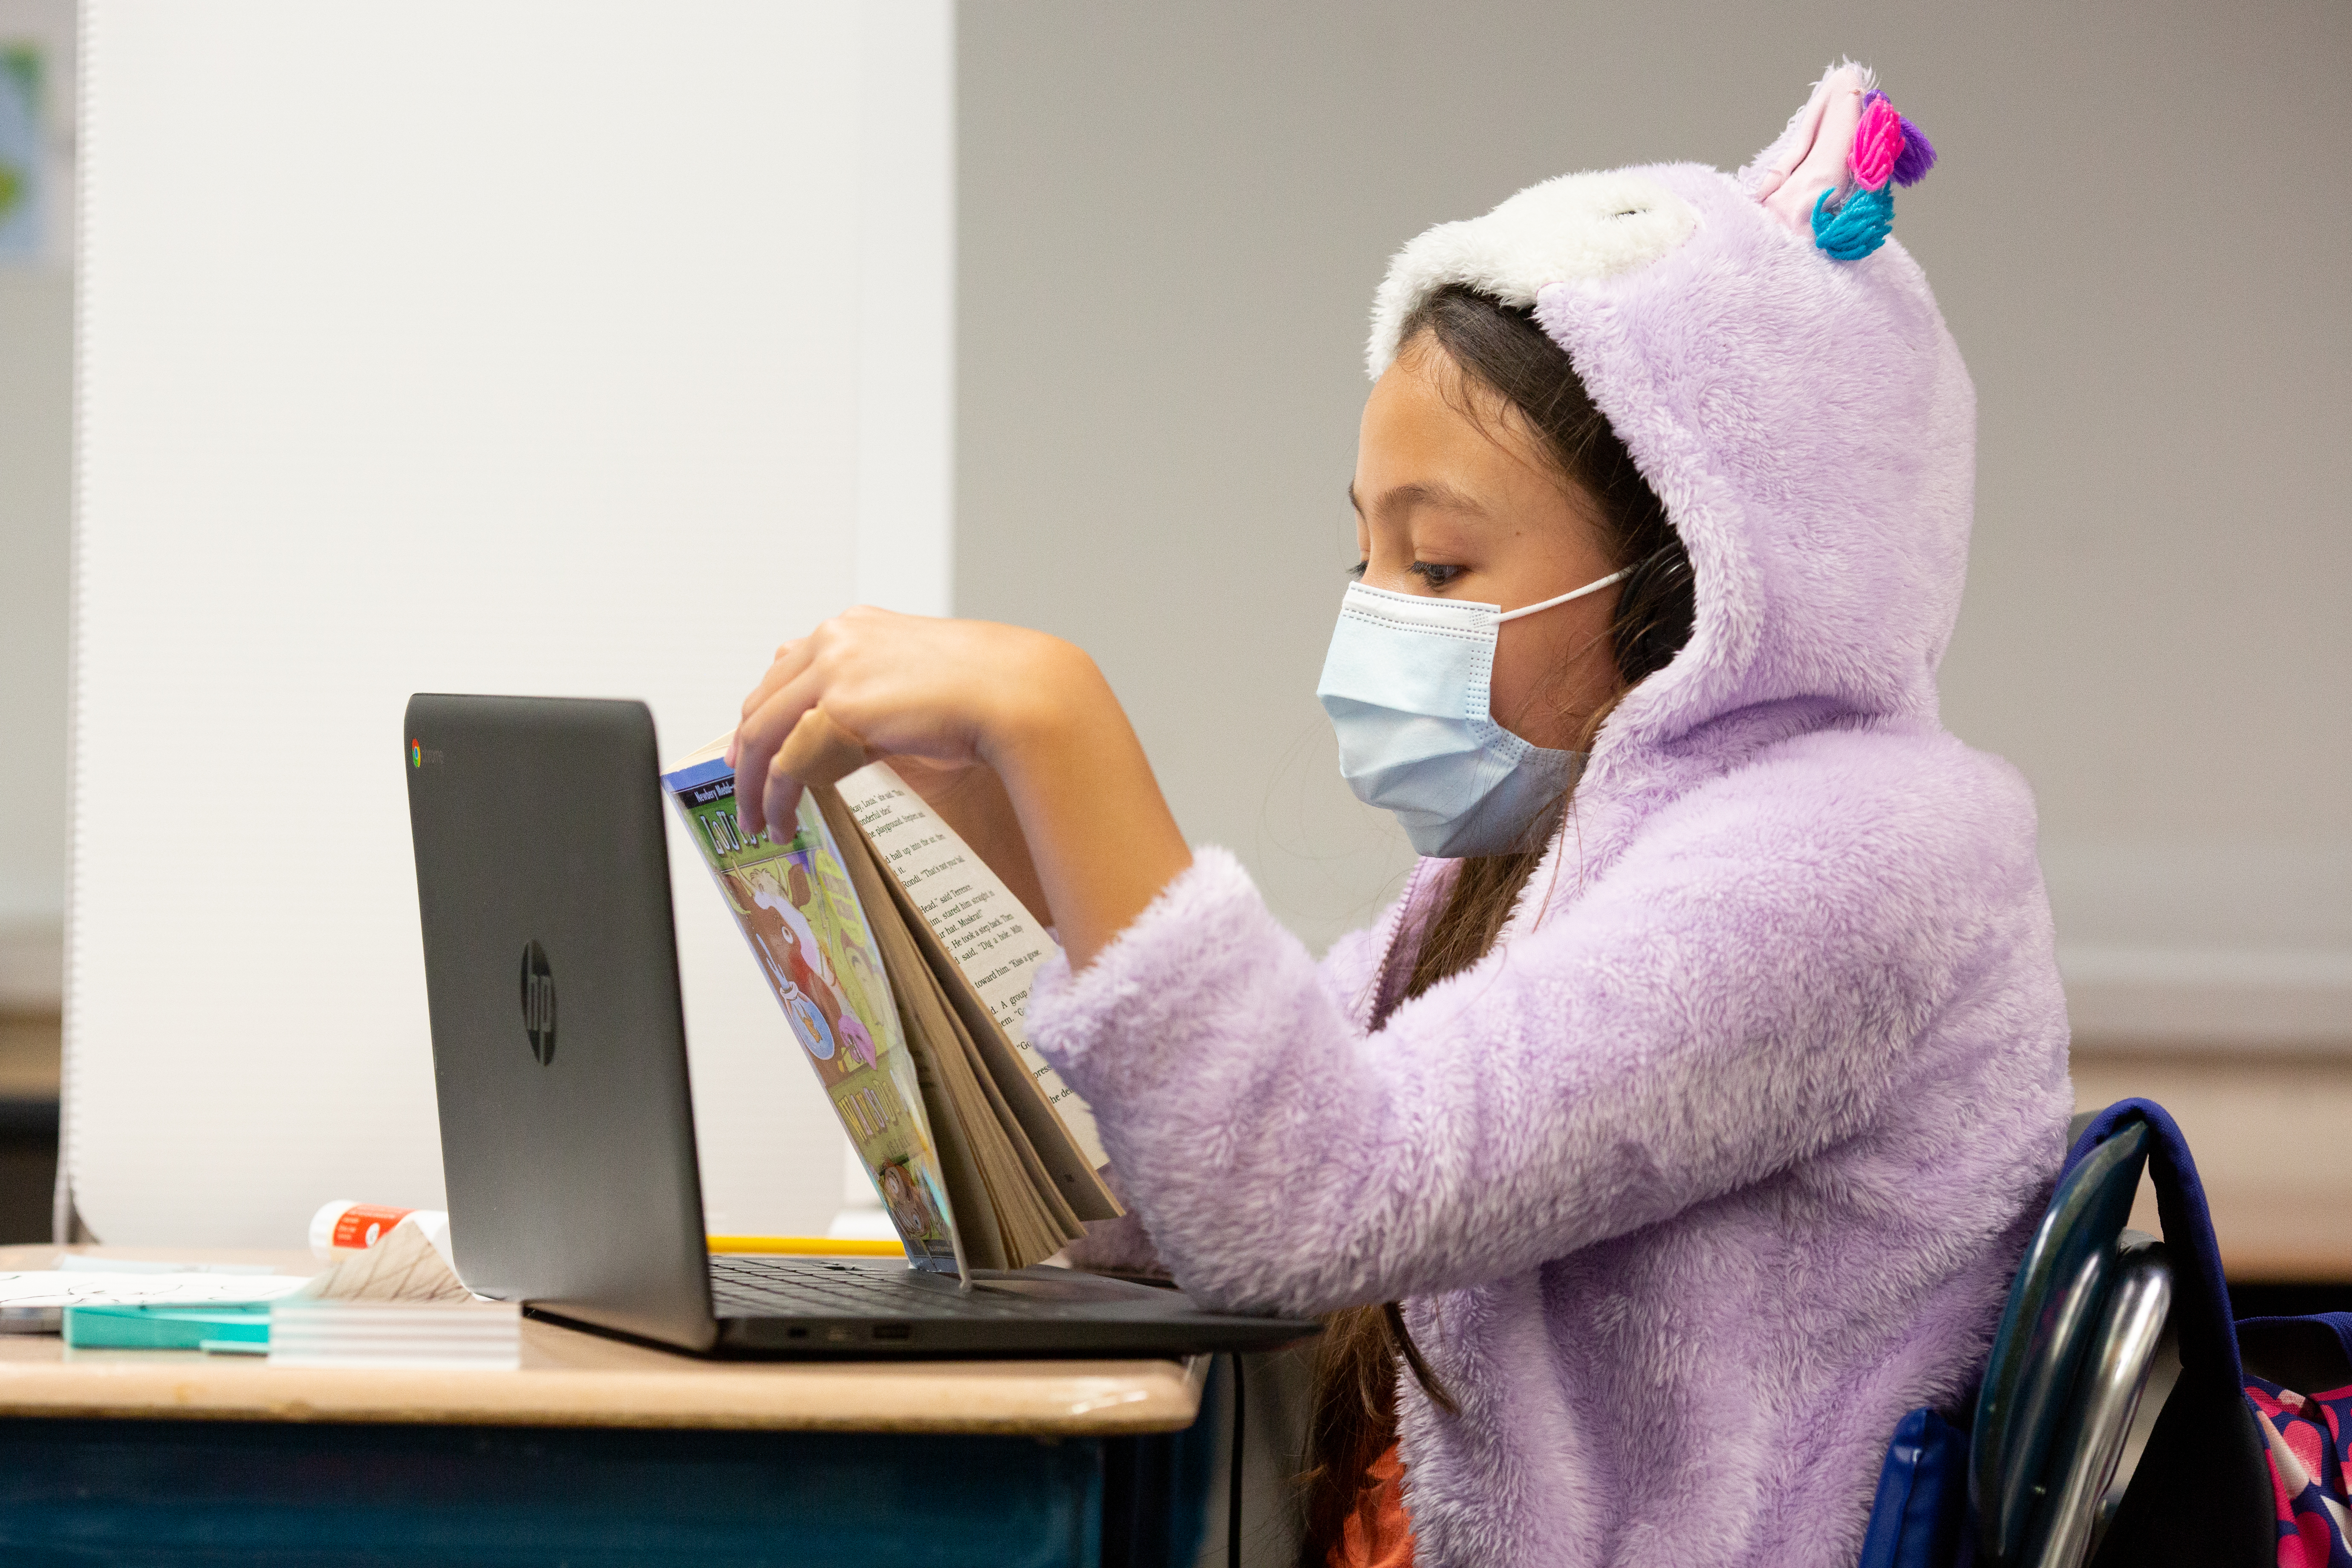 Student wearing a mask and lavender hooded sweatshirt with ears is reading a book in class.